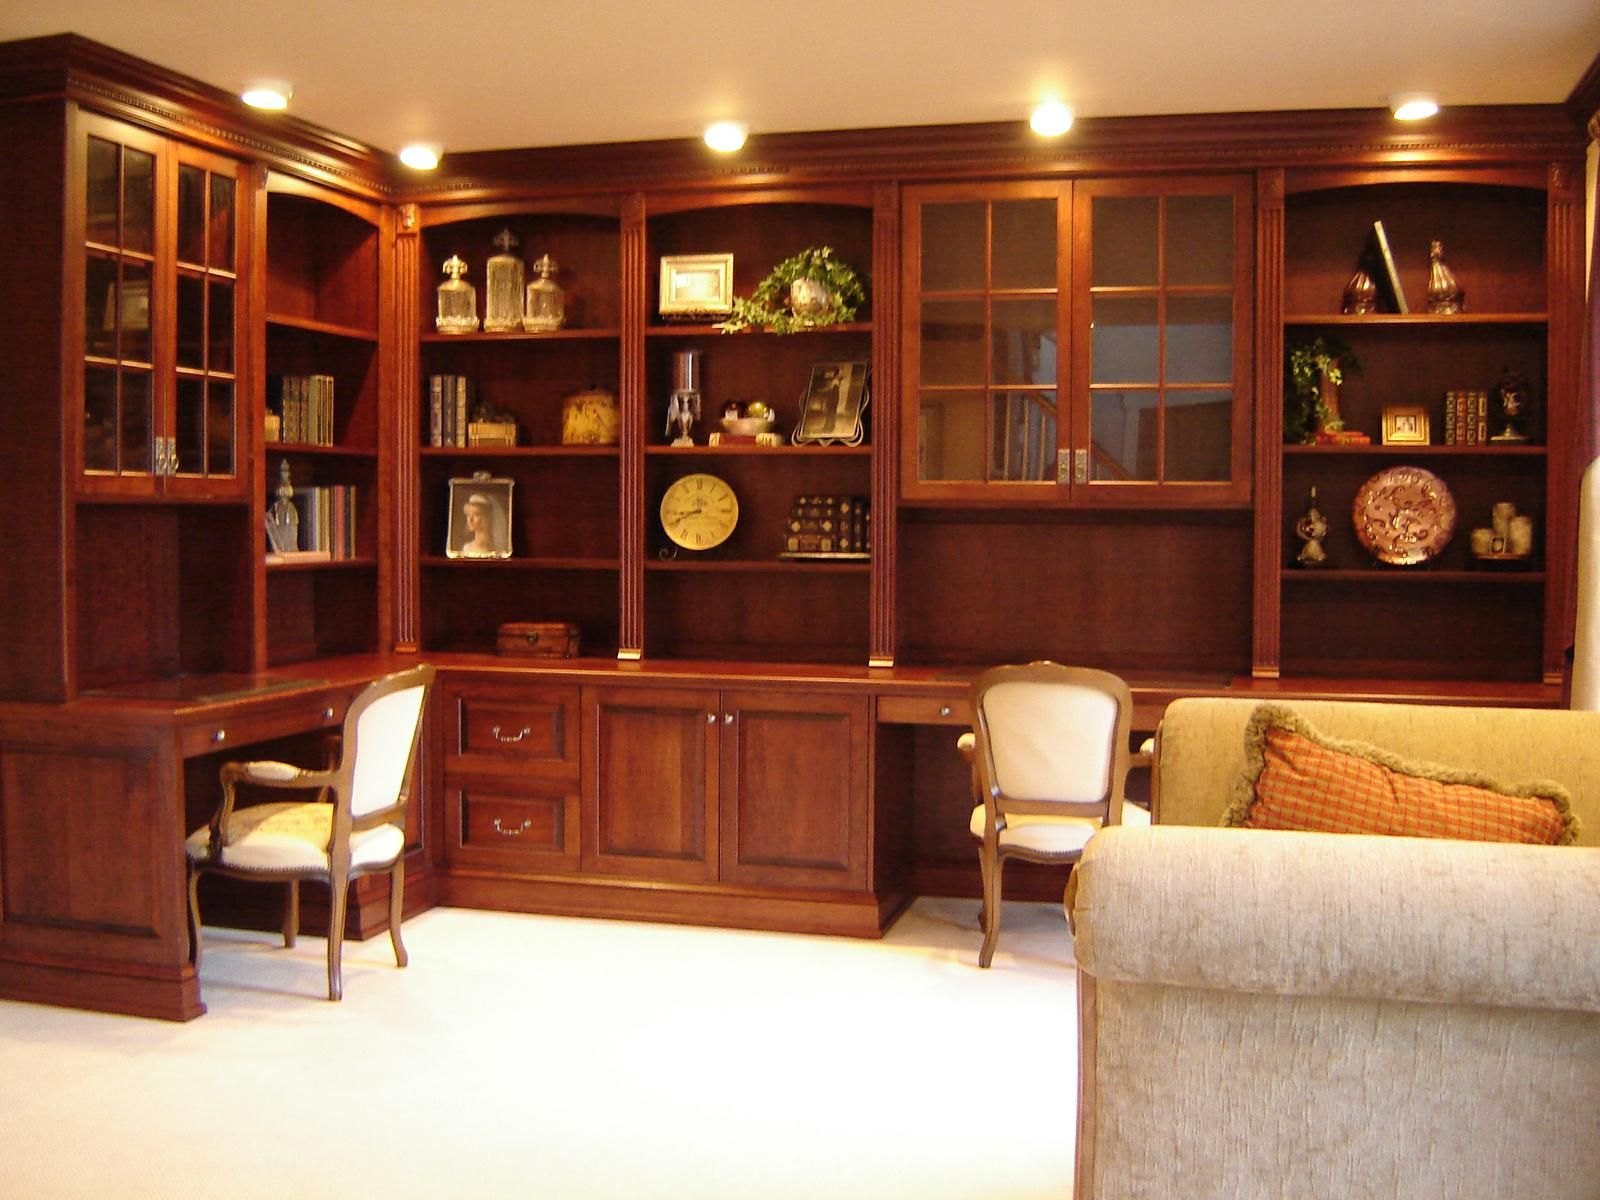 Custom Made Home Office Cabinetry In Cherry. Hand Crafted Home Office Cabinetry In Cherry by Odhner   Odhner